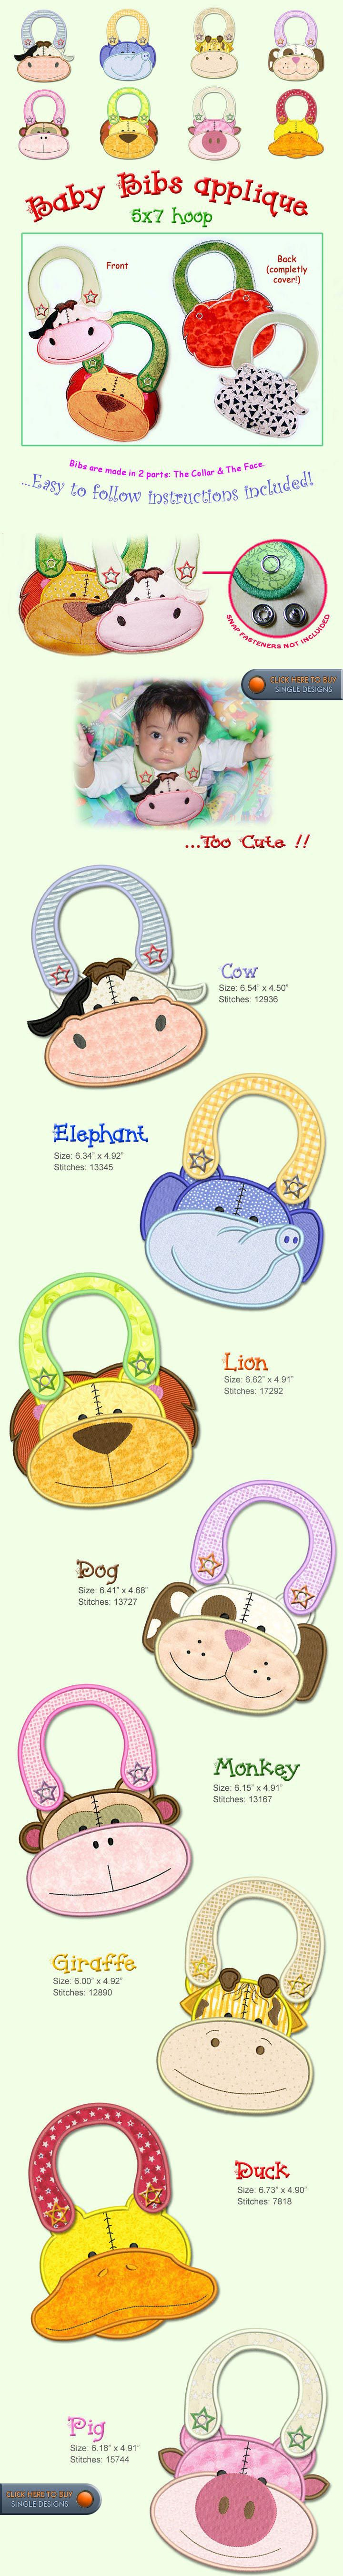 Baby Embroidery Designs Free Embroidery Design Patterns Applique